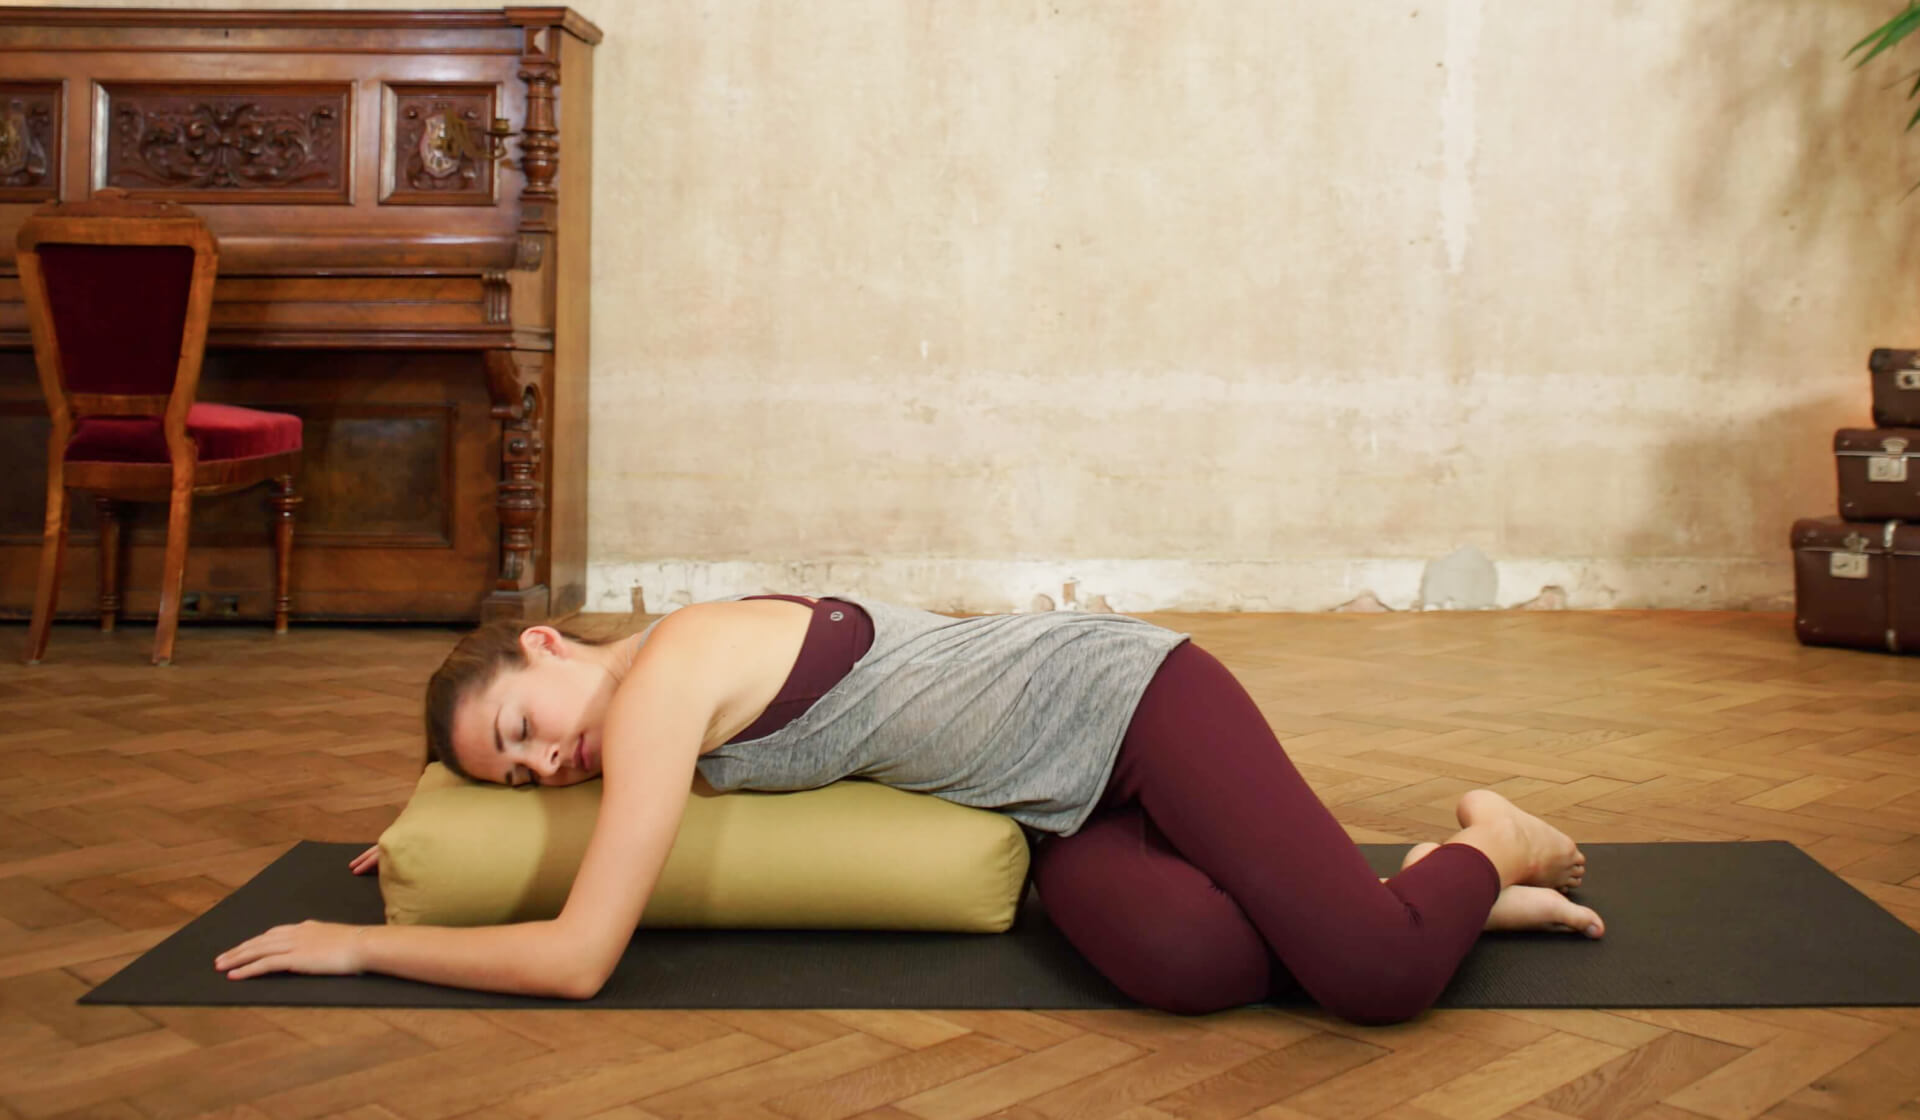 Yoga teacher practicing a relaxing restorative yoga pose laying over a bolster in front of a beige wall and piano